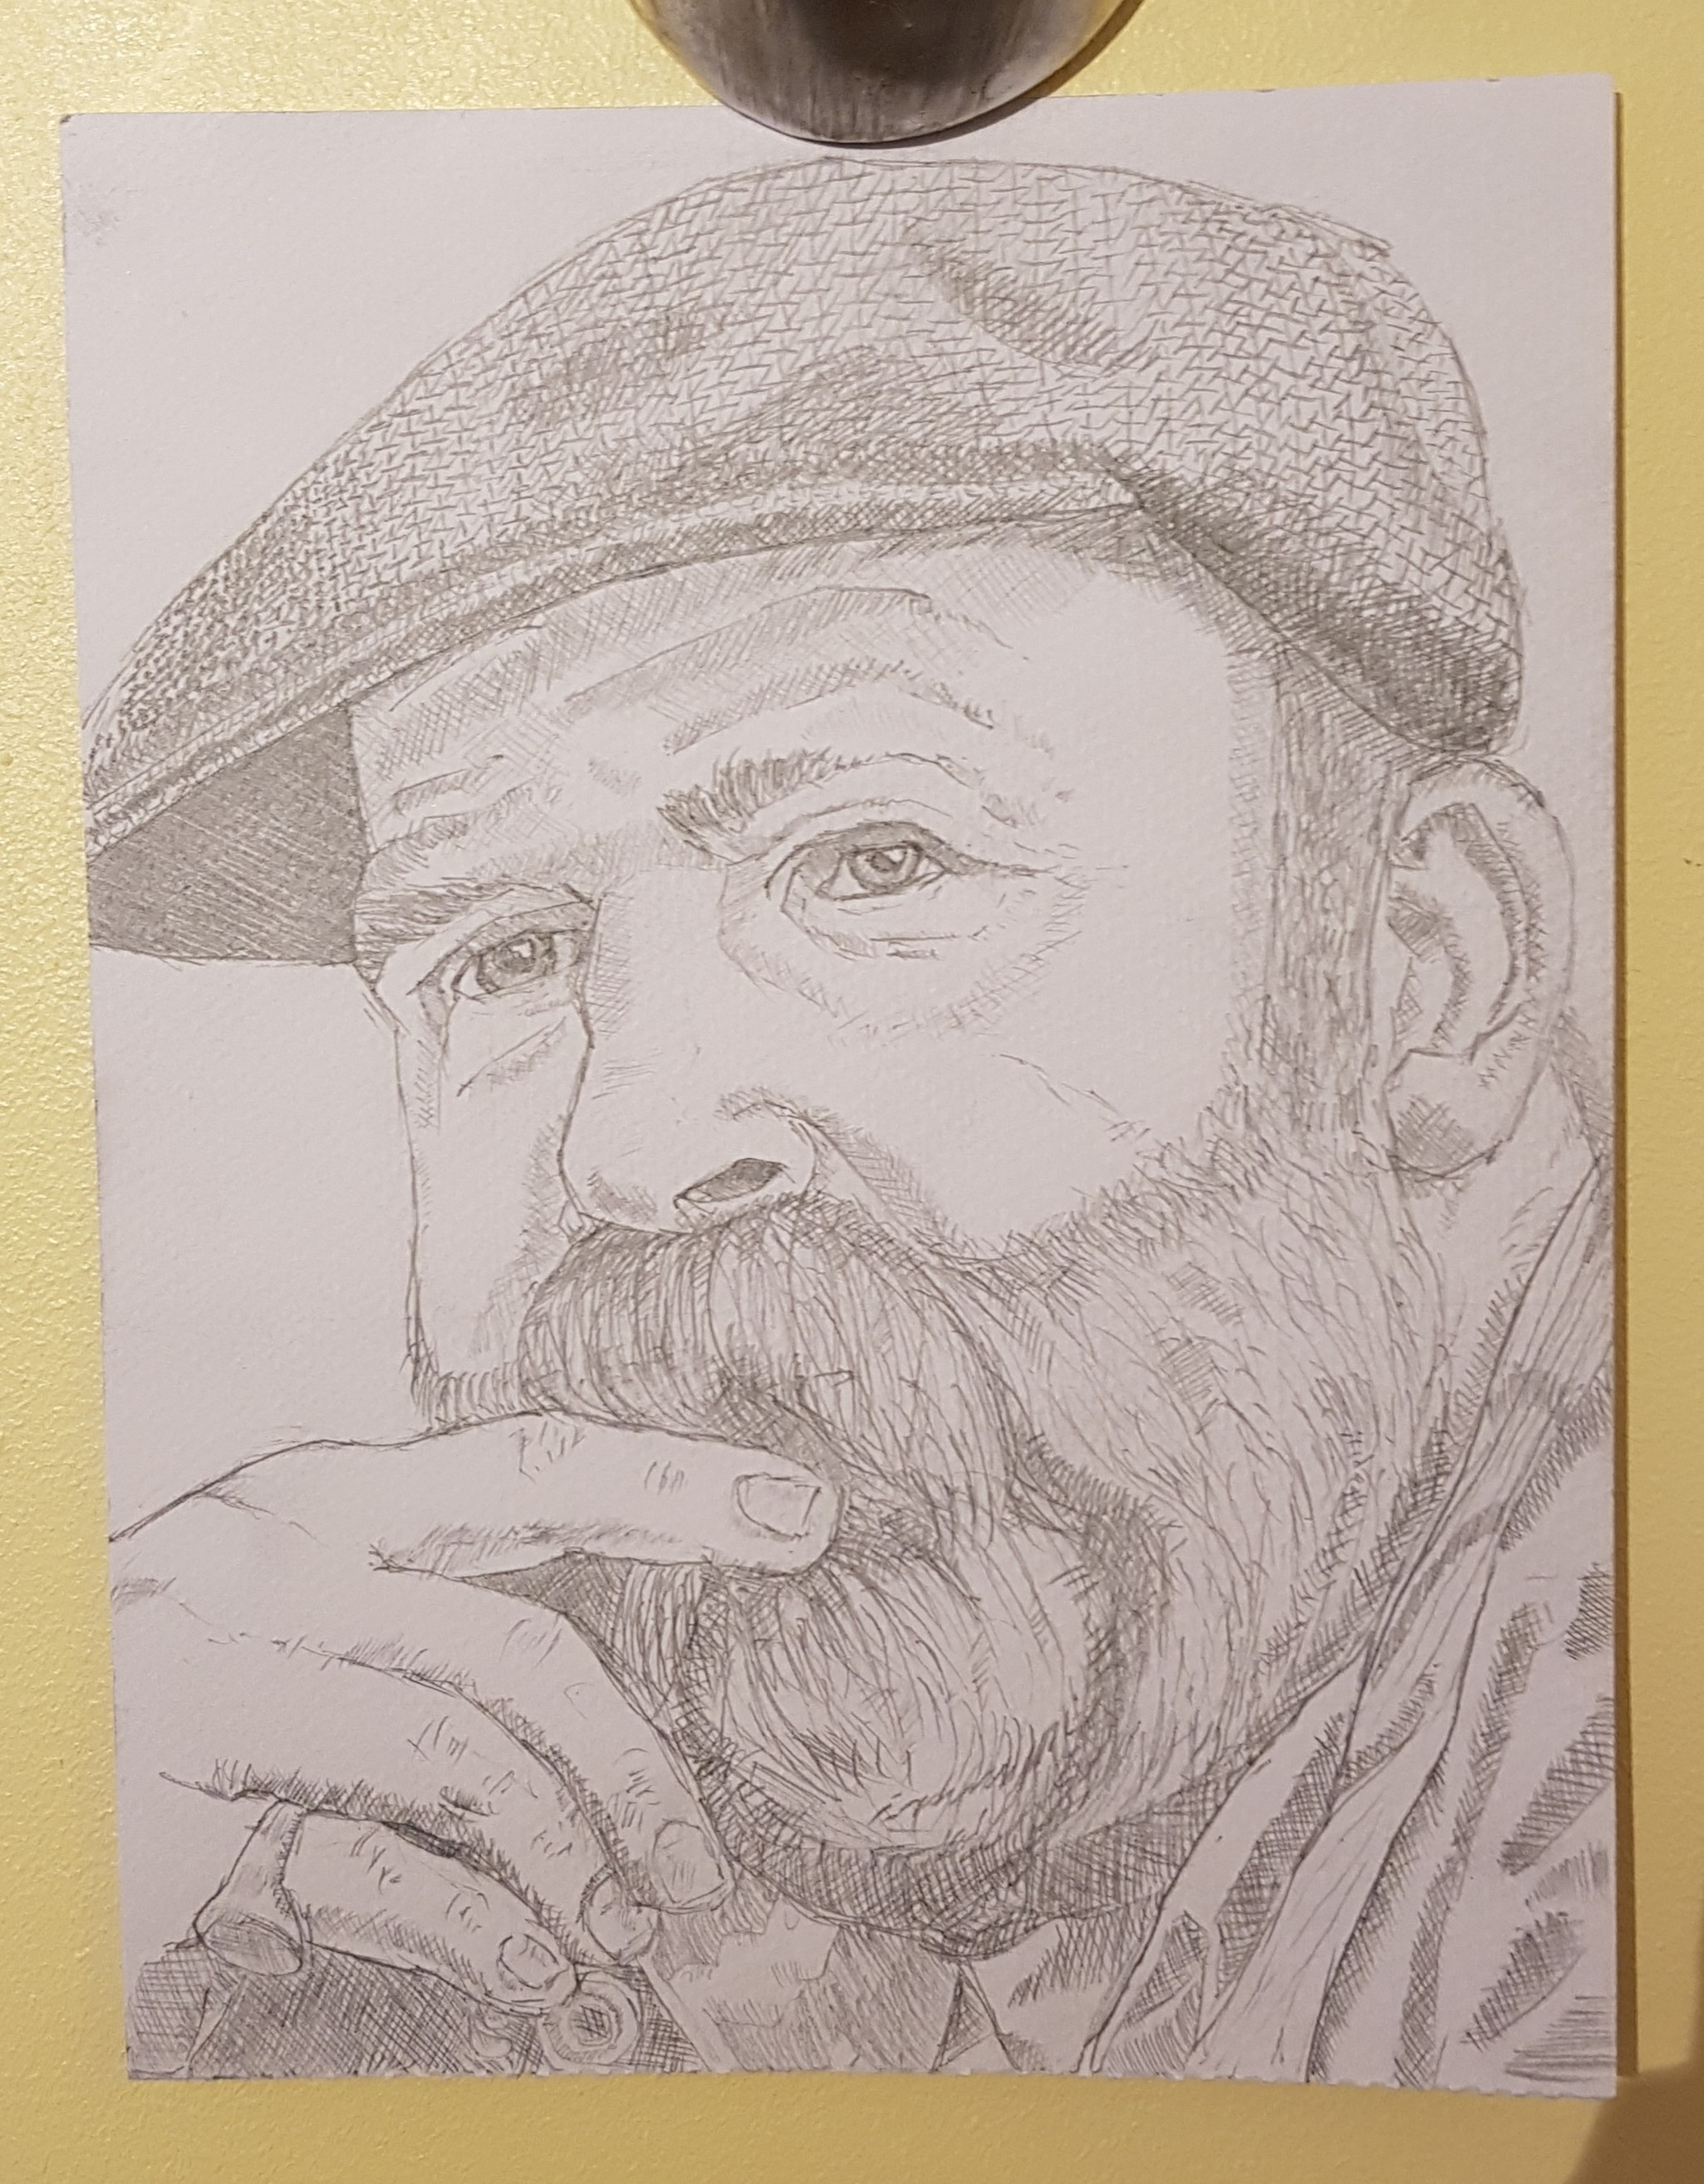 Dick Strawbridge pencil drawing by Glenn Quigley